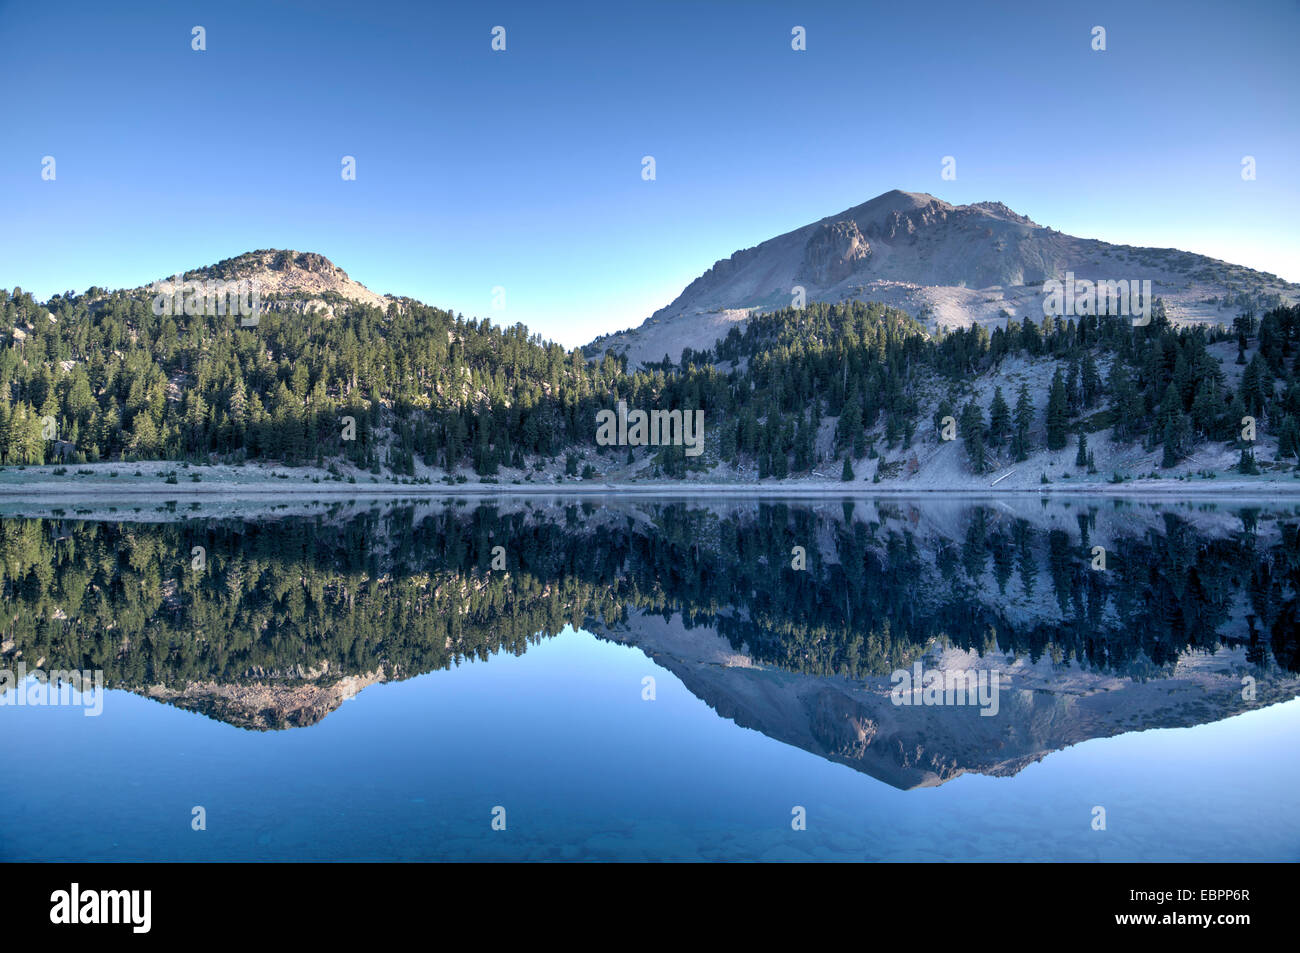 Lake Helen and Mount Lassen, 3187 meters, in the background, Lassen Volcanic National Park, California, United States - Stock Image